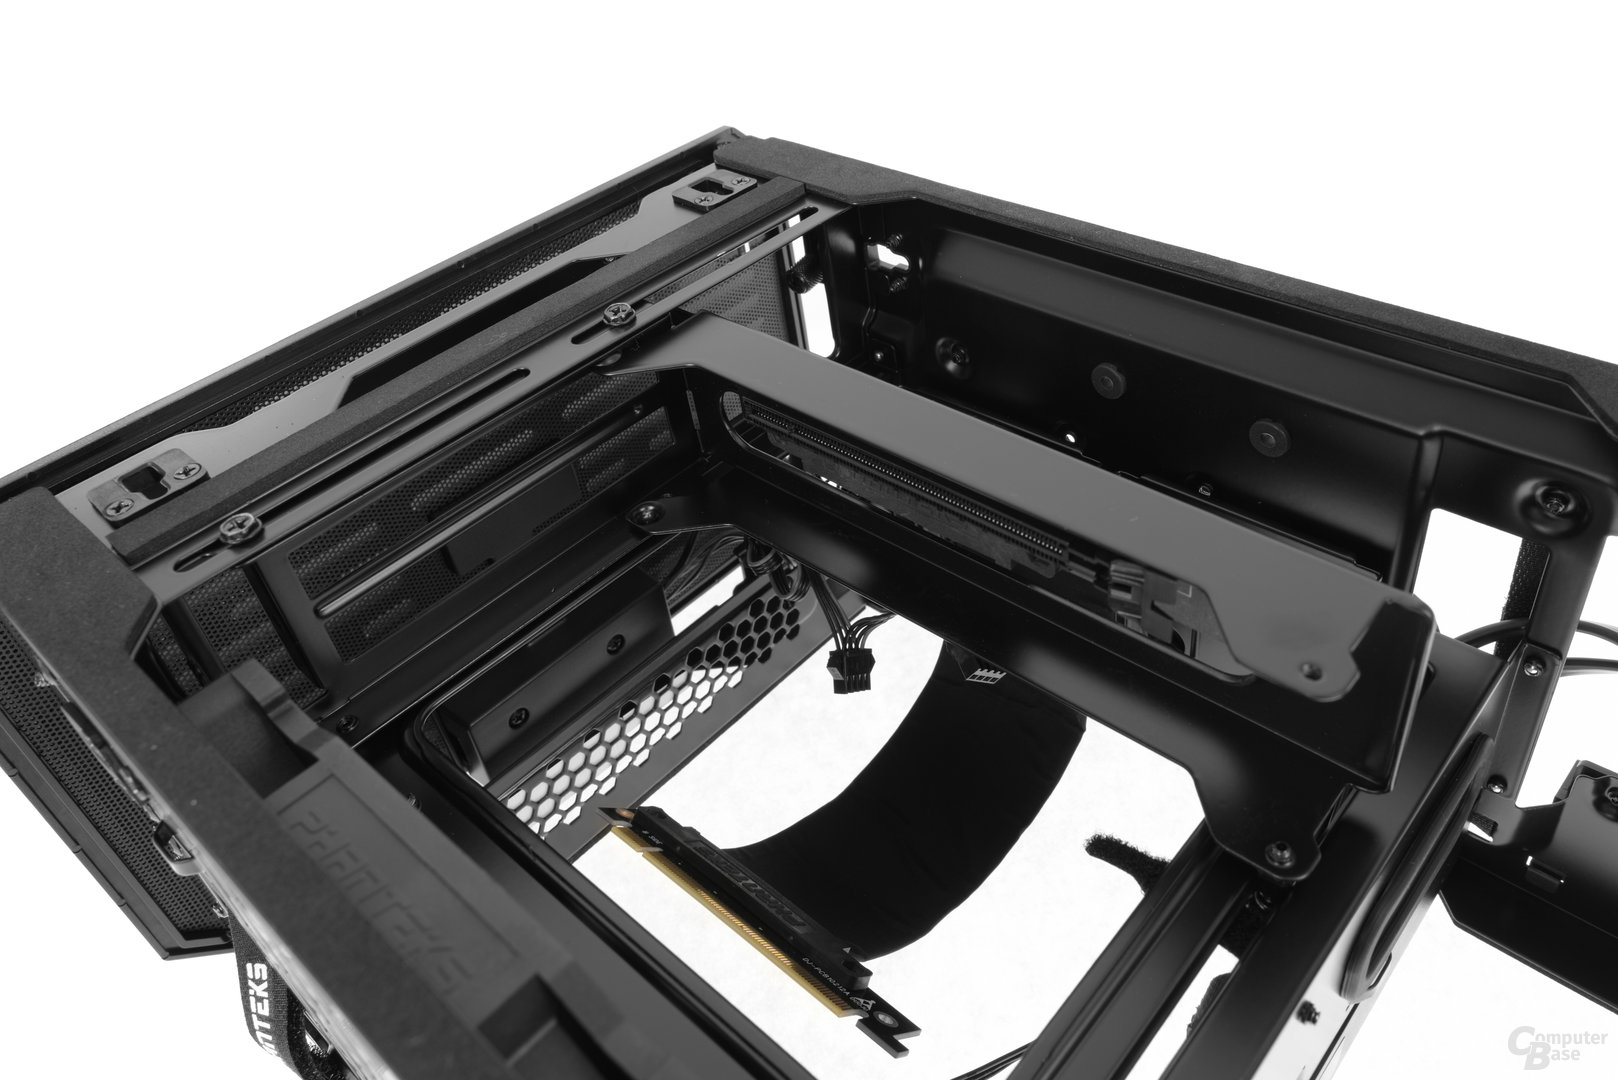 Phanteks Enthoo Evolv Shift – Die Grafikkarte nimmt in einem verstellbaren Bracket Platz